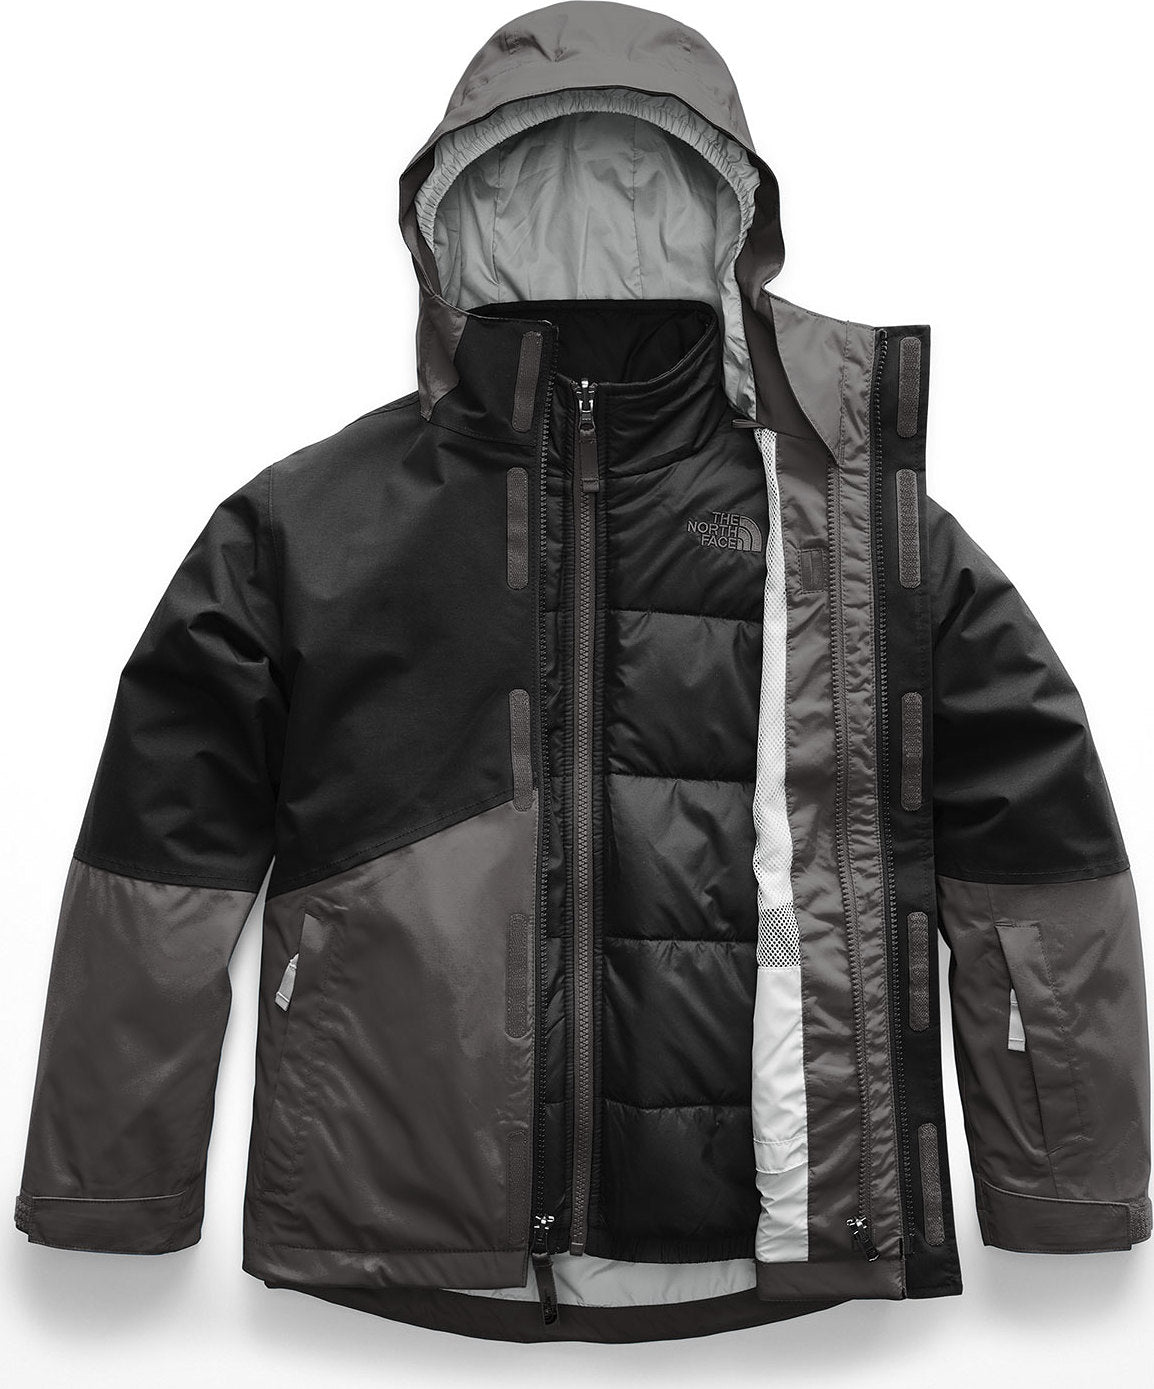 0b98db862 The North Face Boy's Boundary Triclimate Jacket